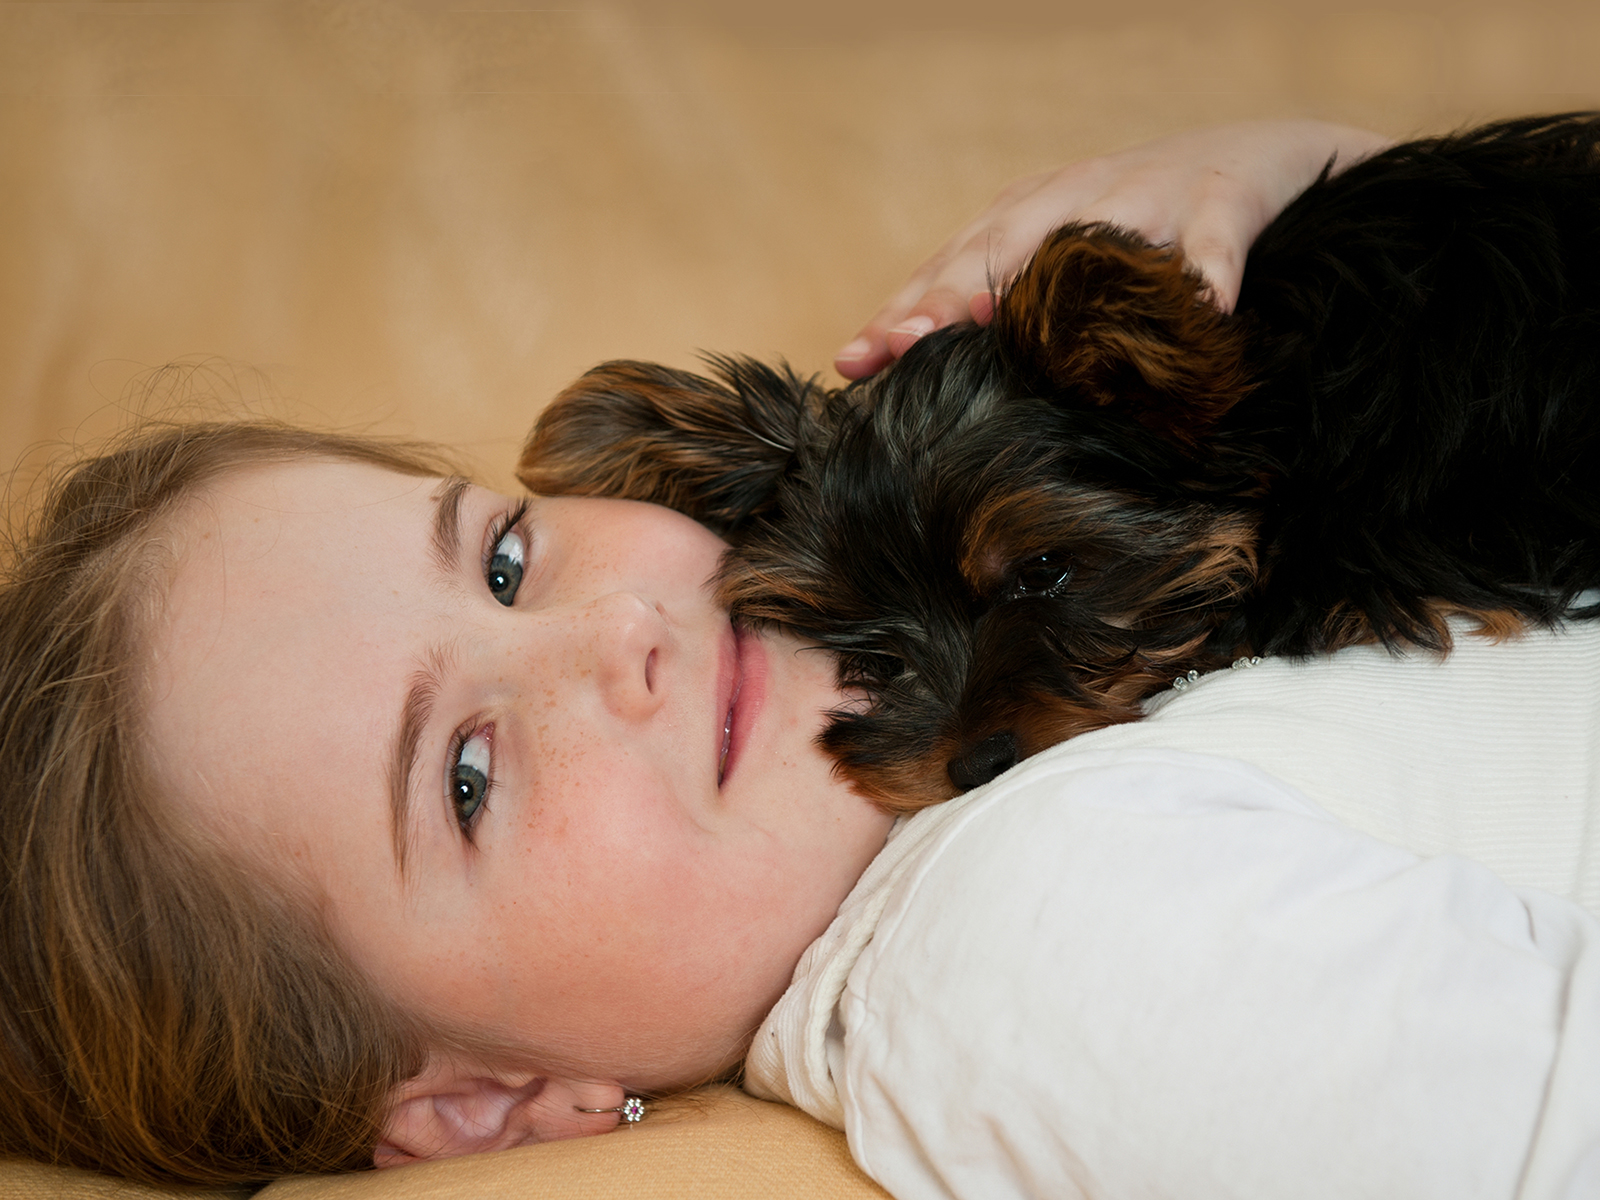 Cute young girl with her dog resting on her chest.